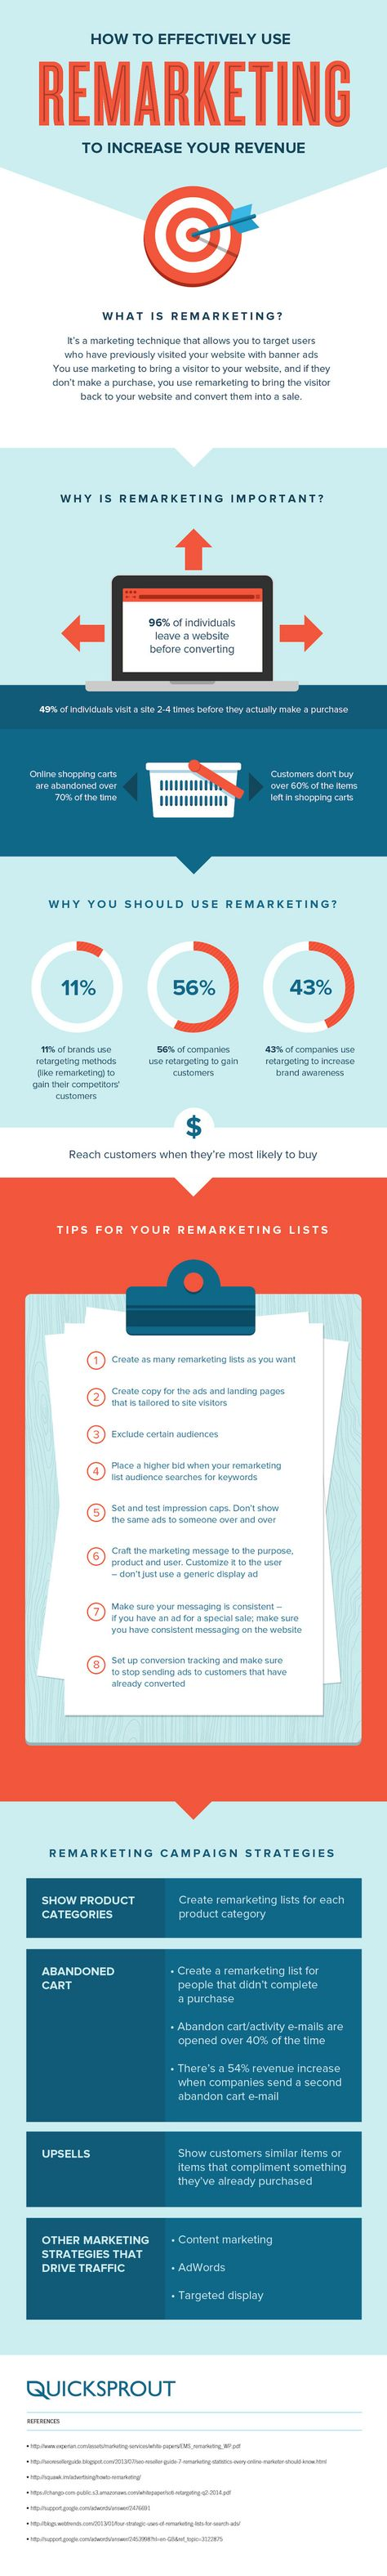 8 Fantastic Remarketing Tips #Infographic